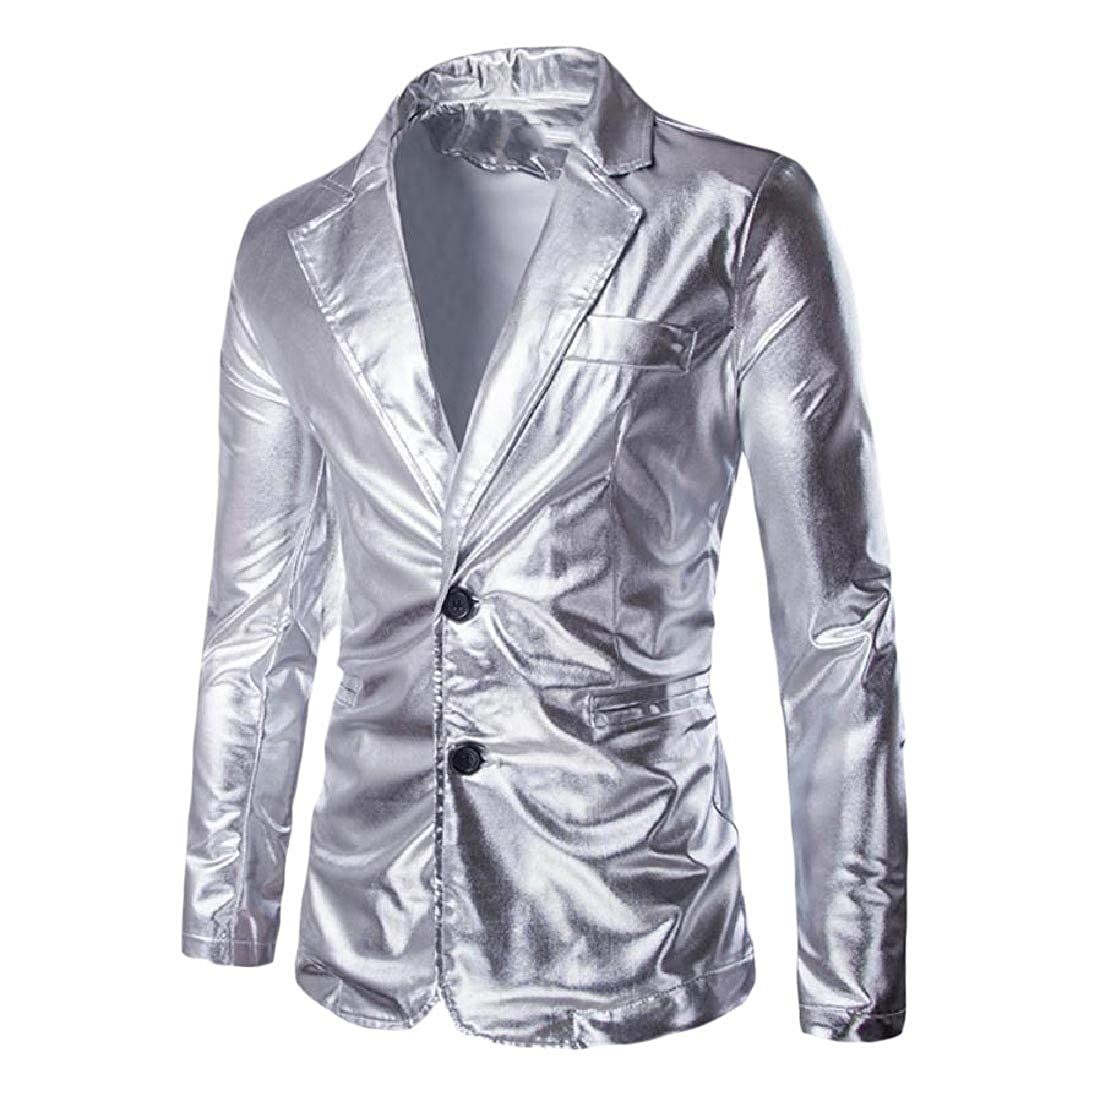 Abetteric Men Shiny Wedding Party Suit Blazer Jacket & Flat Pants Set